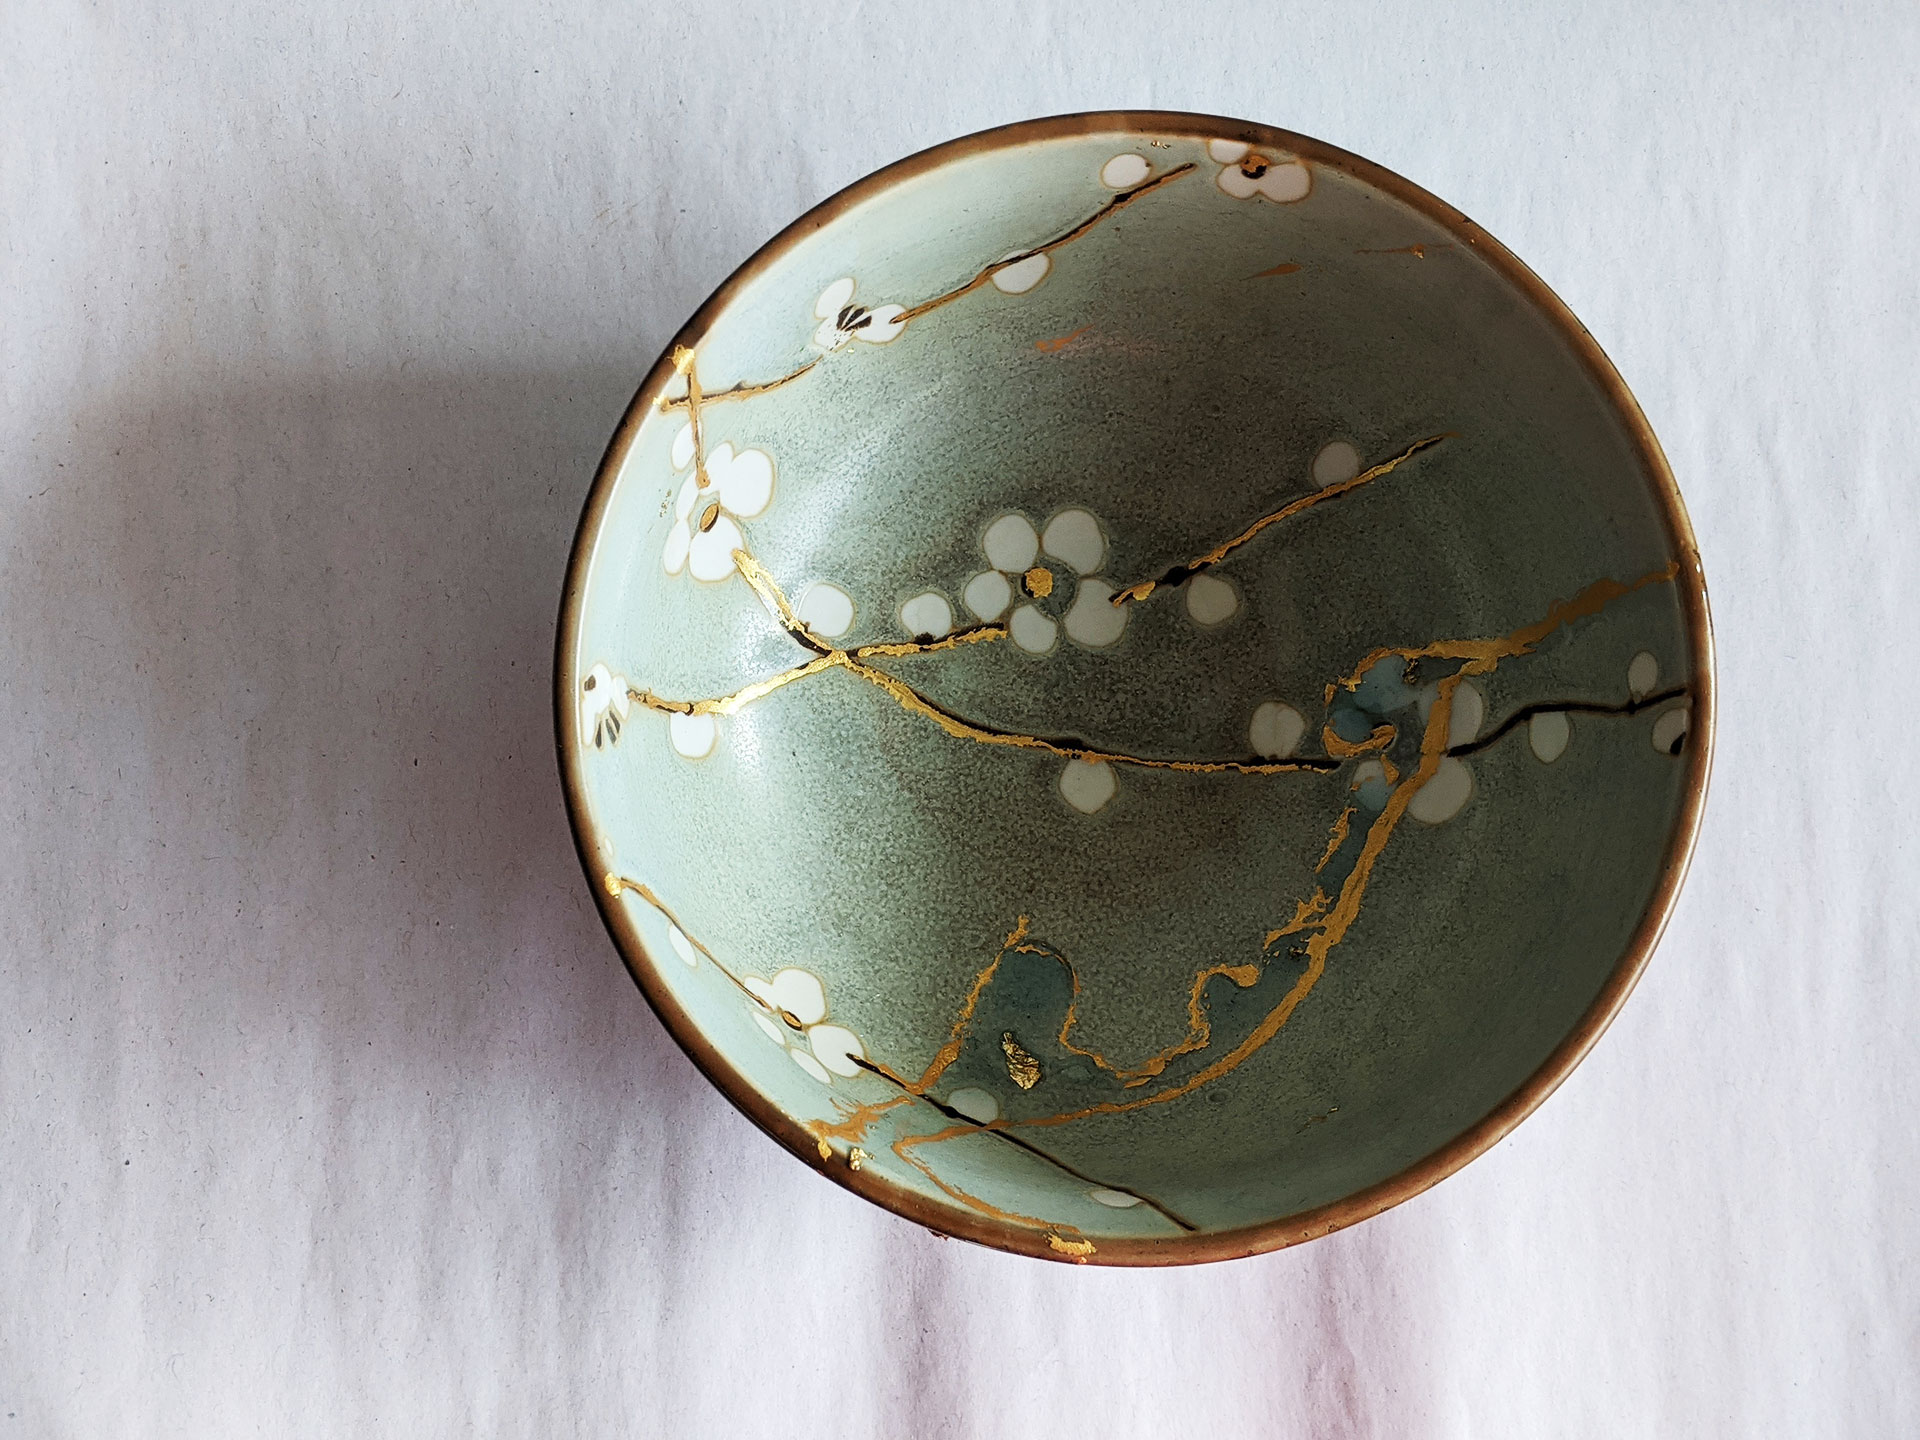 Kintsugi Repair: Gold color plus resin embedded with gold flakes